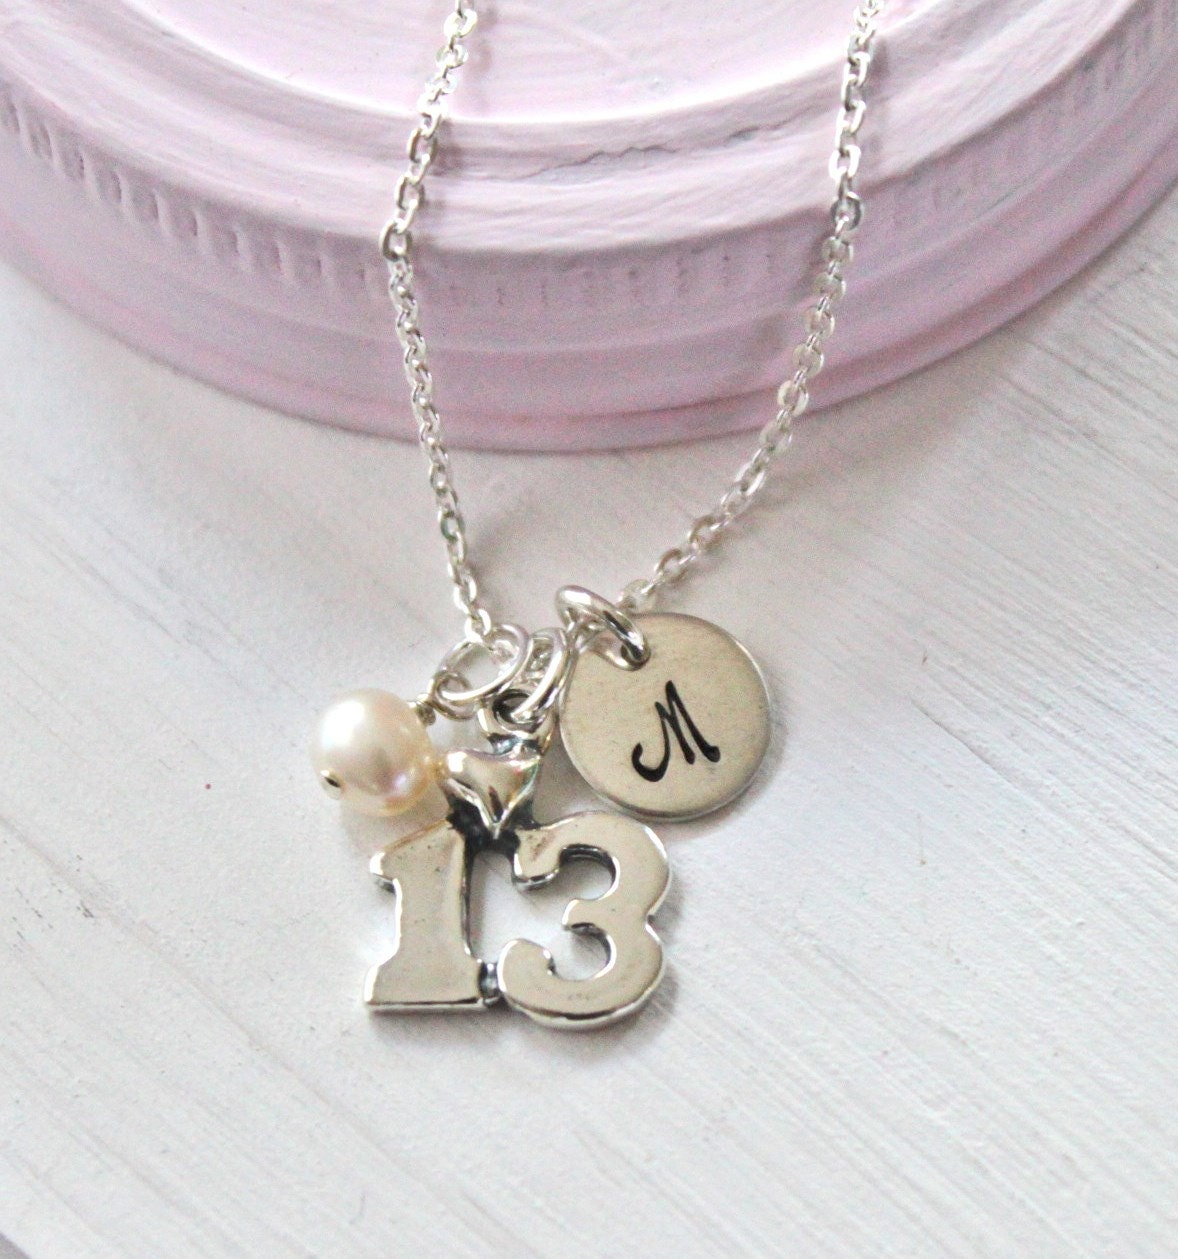 Personalized 18th Birthday Necklace Initial Custom: 13th Birthday Necklace Personalized Girls Necklace Hand